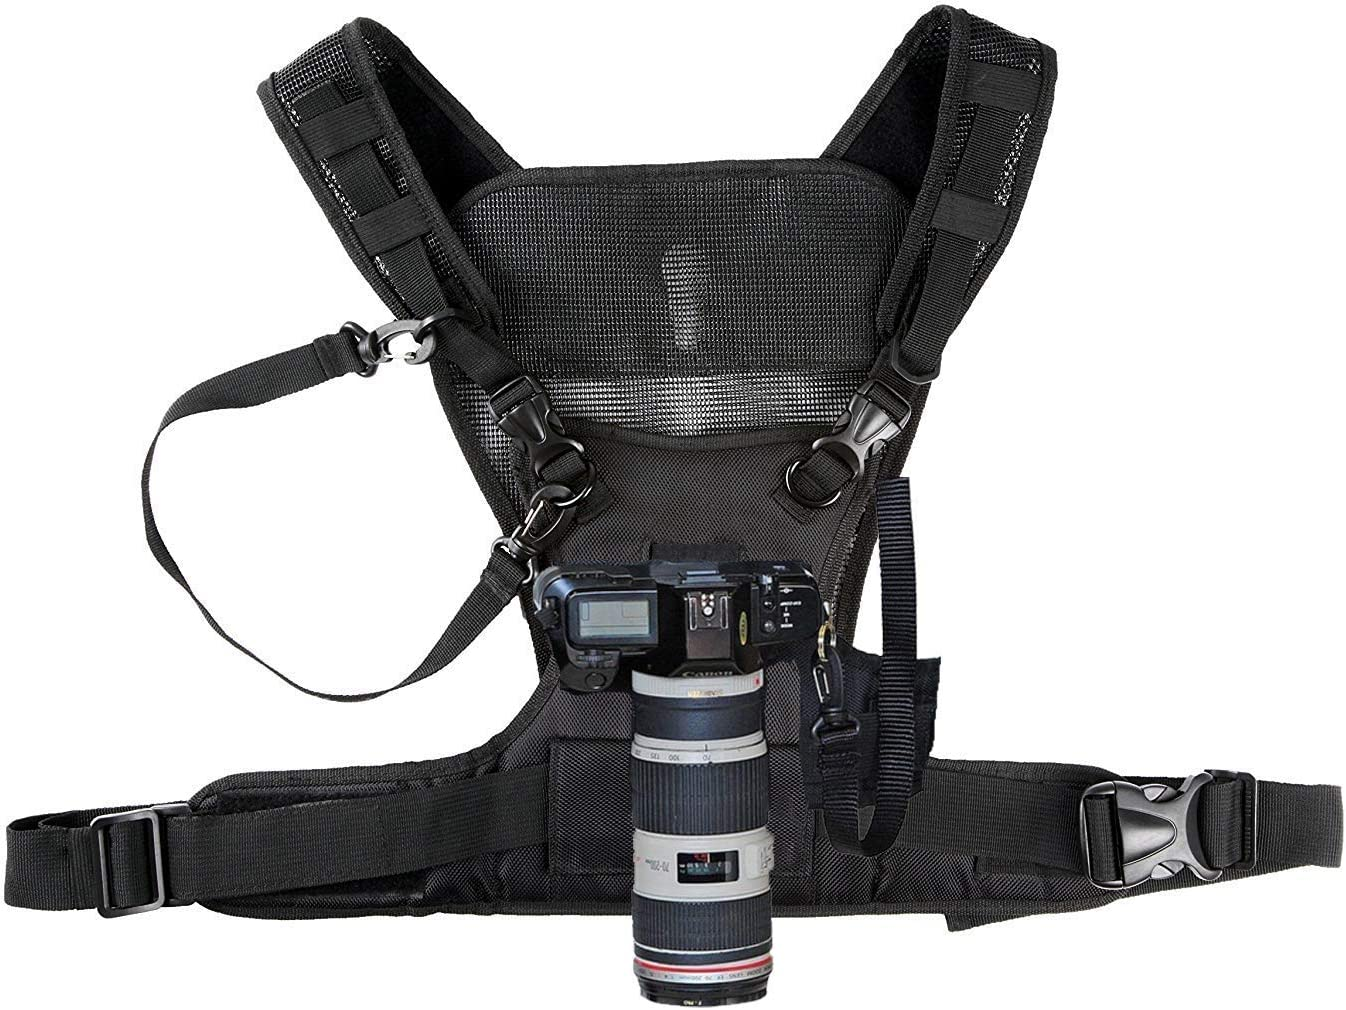 Side Holster /& Backup Safety Straps for Canon 6D 5D2 5D3 Nikon Sony A7R A7S2 Sigma Olympus DSLR Climbing Wedding Travel Hiking Nicama Double Multi Camera Carrier Chest Harness Vest with Mounting Hubs